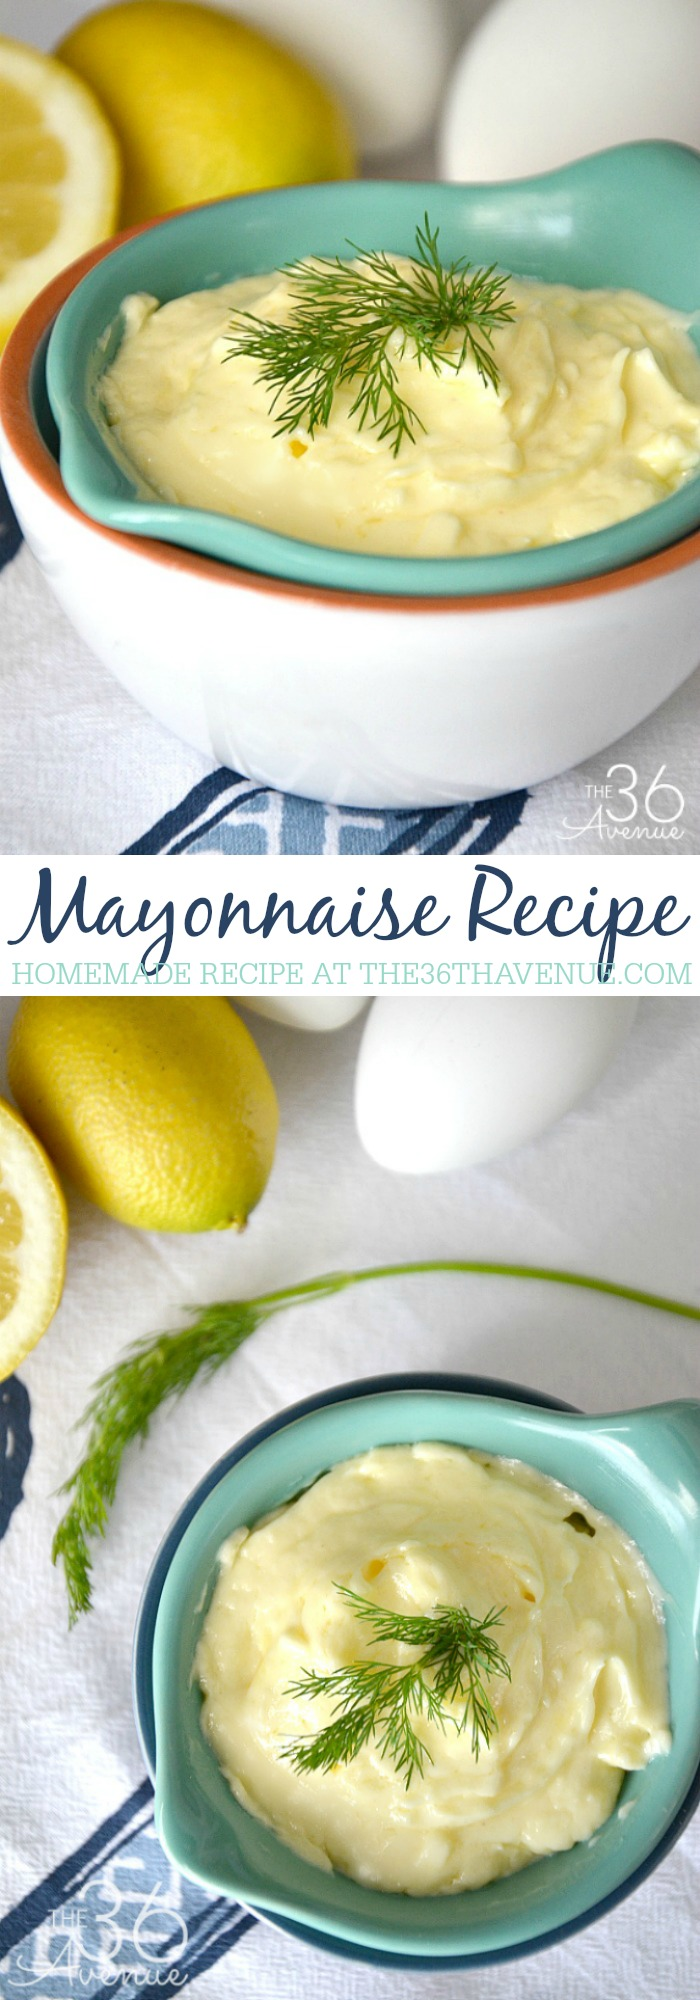 Recipes - How to make Homemade Mayonnaise. Just four ingredients and 5 minutes to make